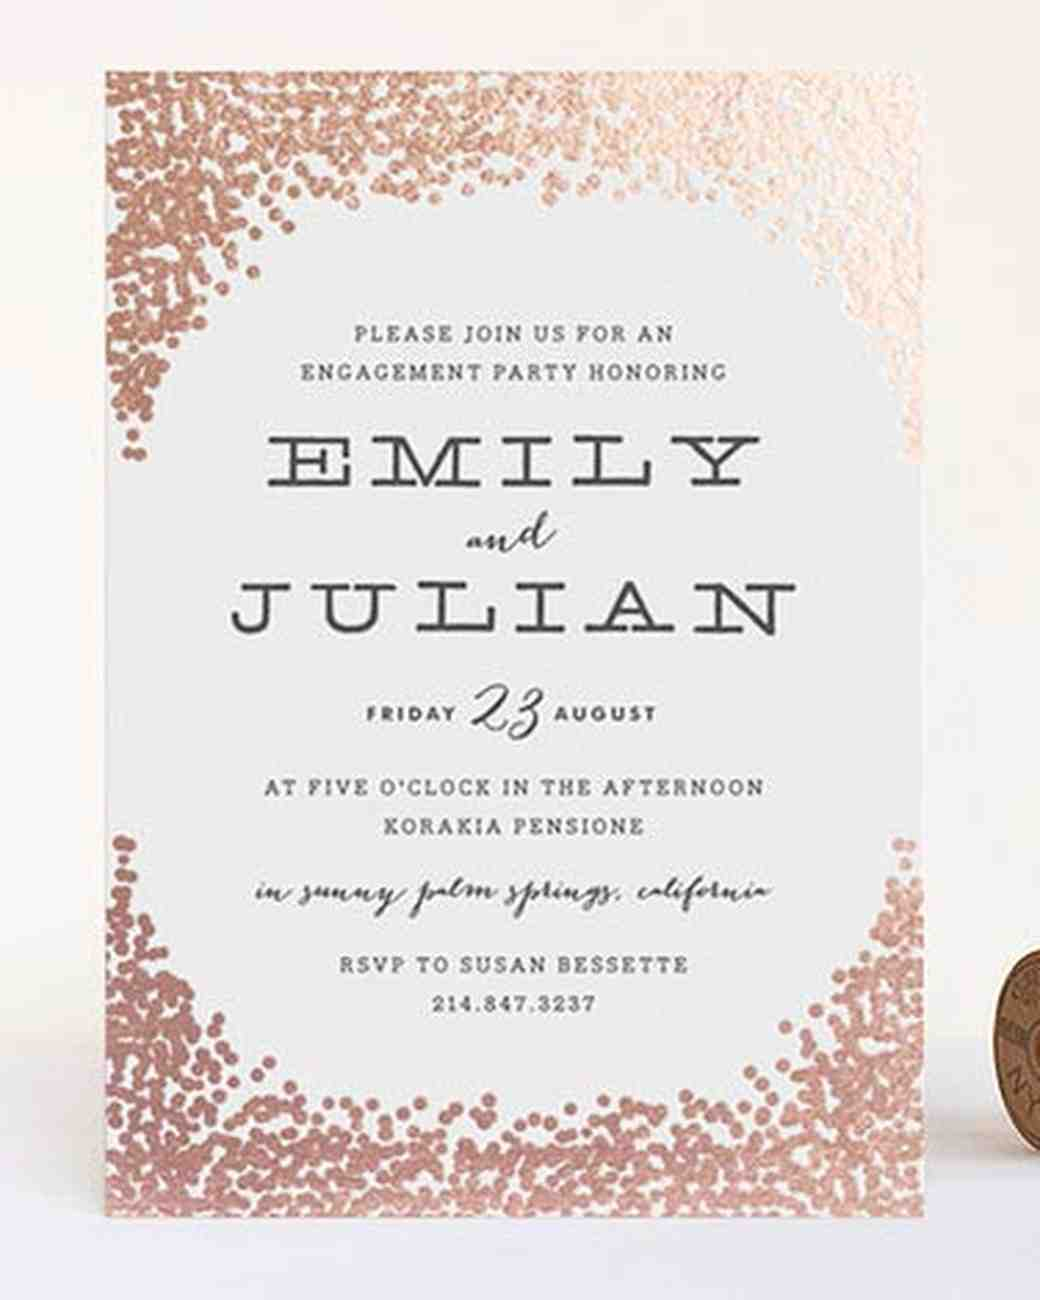 Engagement Party Invitations Melbourne Choice Image - Party ...